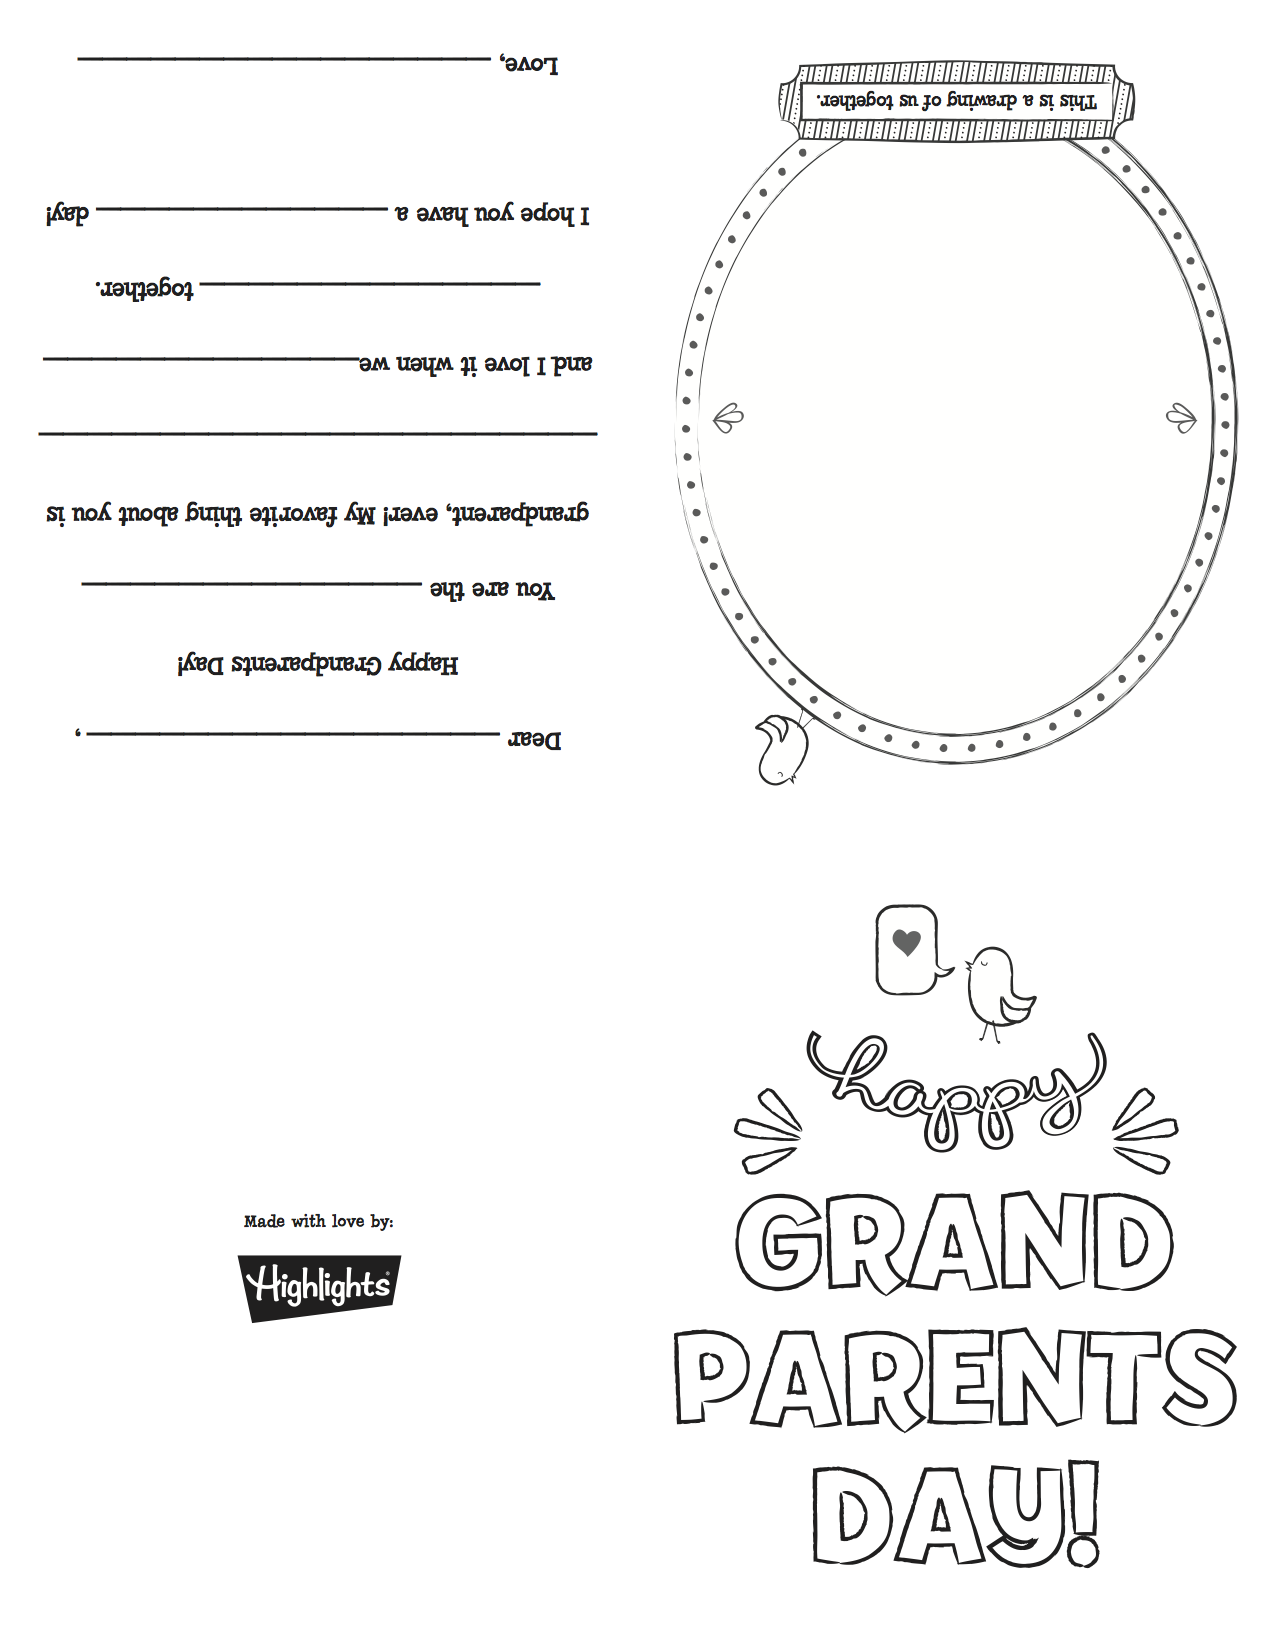 Follow the link to download this free printable coloring card for Grandparent's Day!